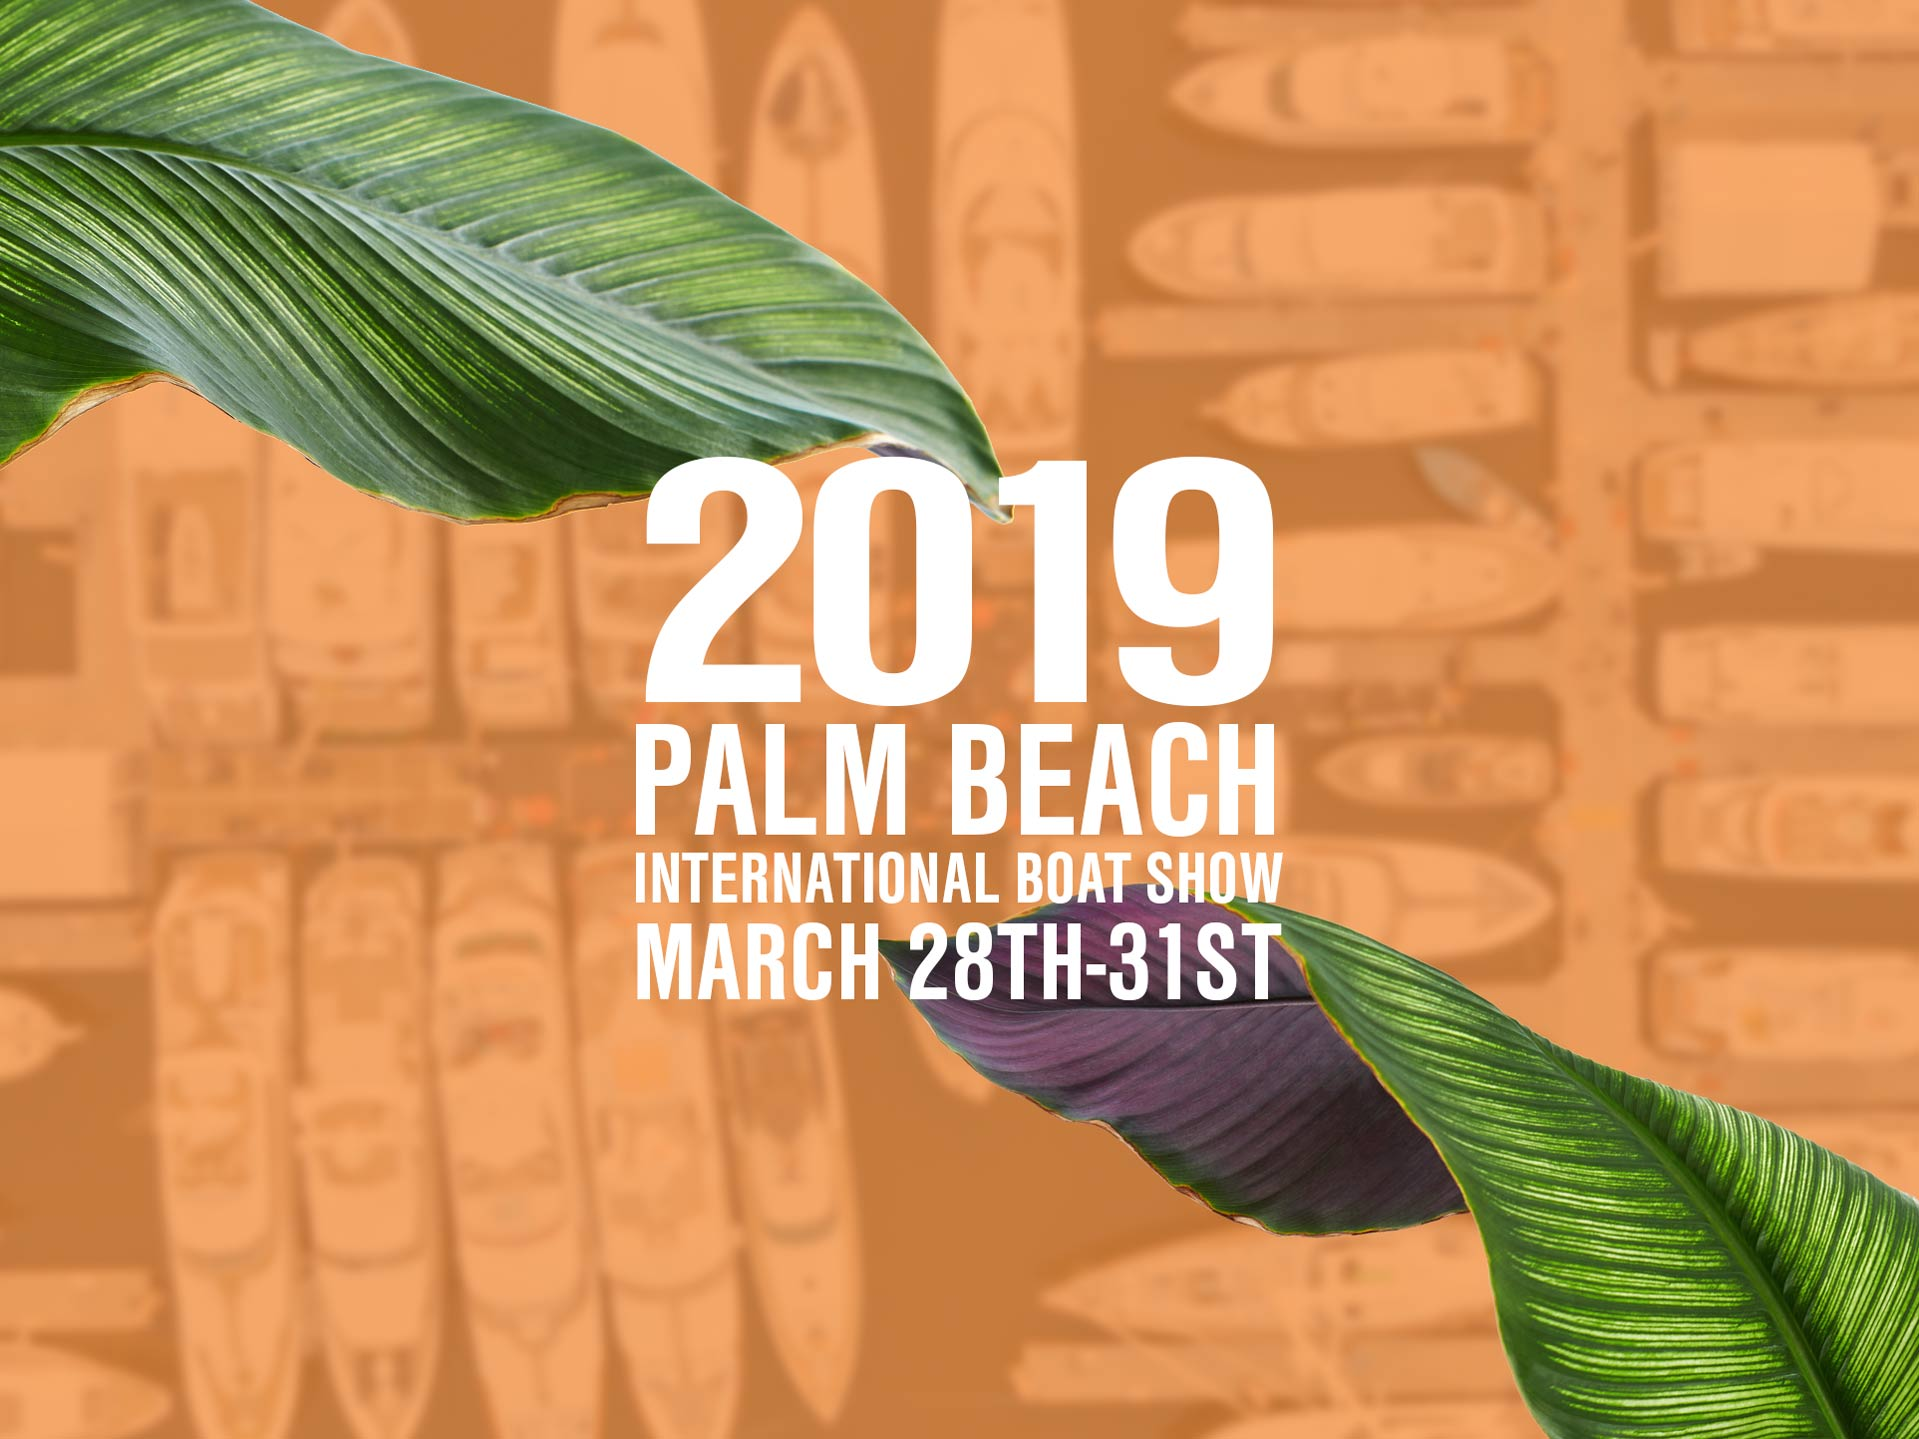 JOIN WORTH AT THE 2019 PALM BEACH INTERNATIONAL BOAT SHOW MARCH 28TH THROUGH THE 31ST IN DOWNTOWN WEST PALM BEACH, FLORIDA